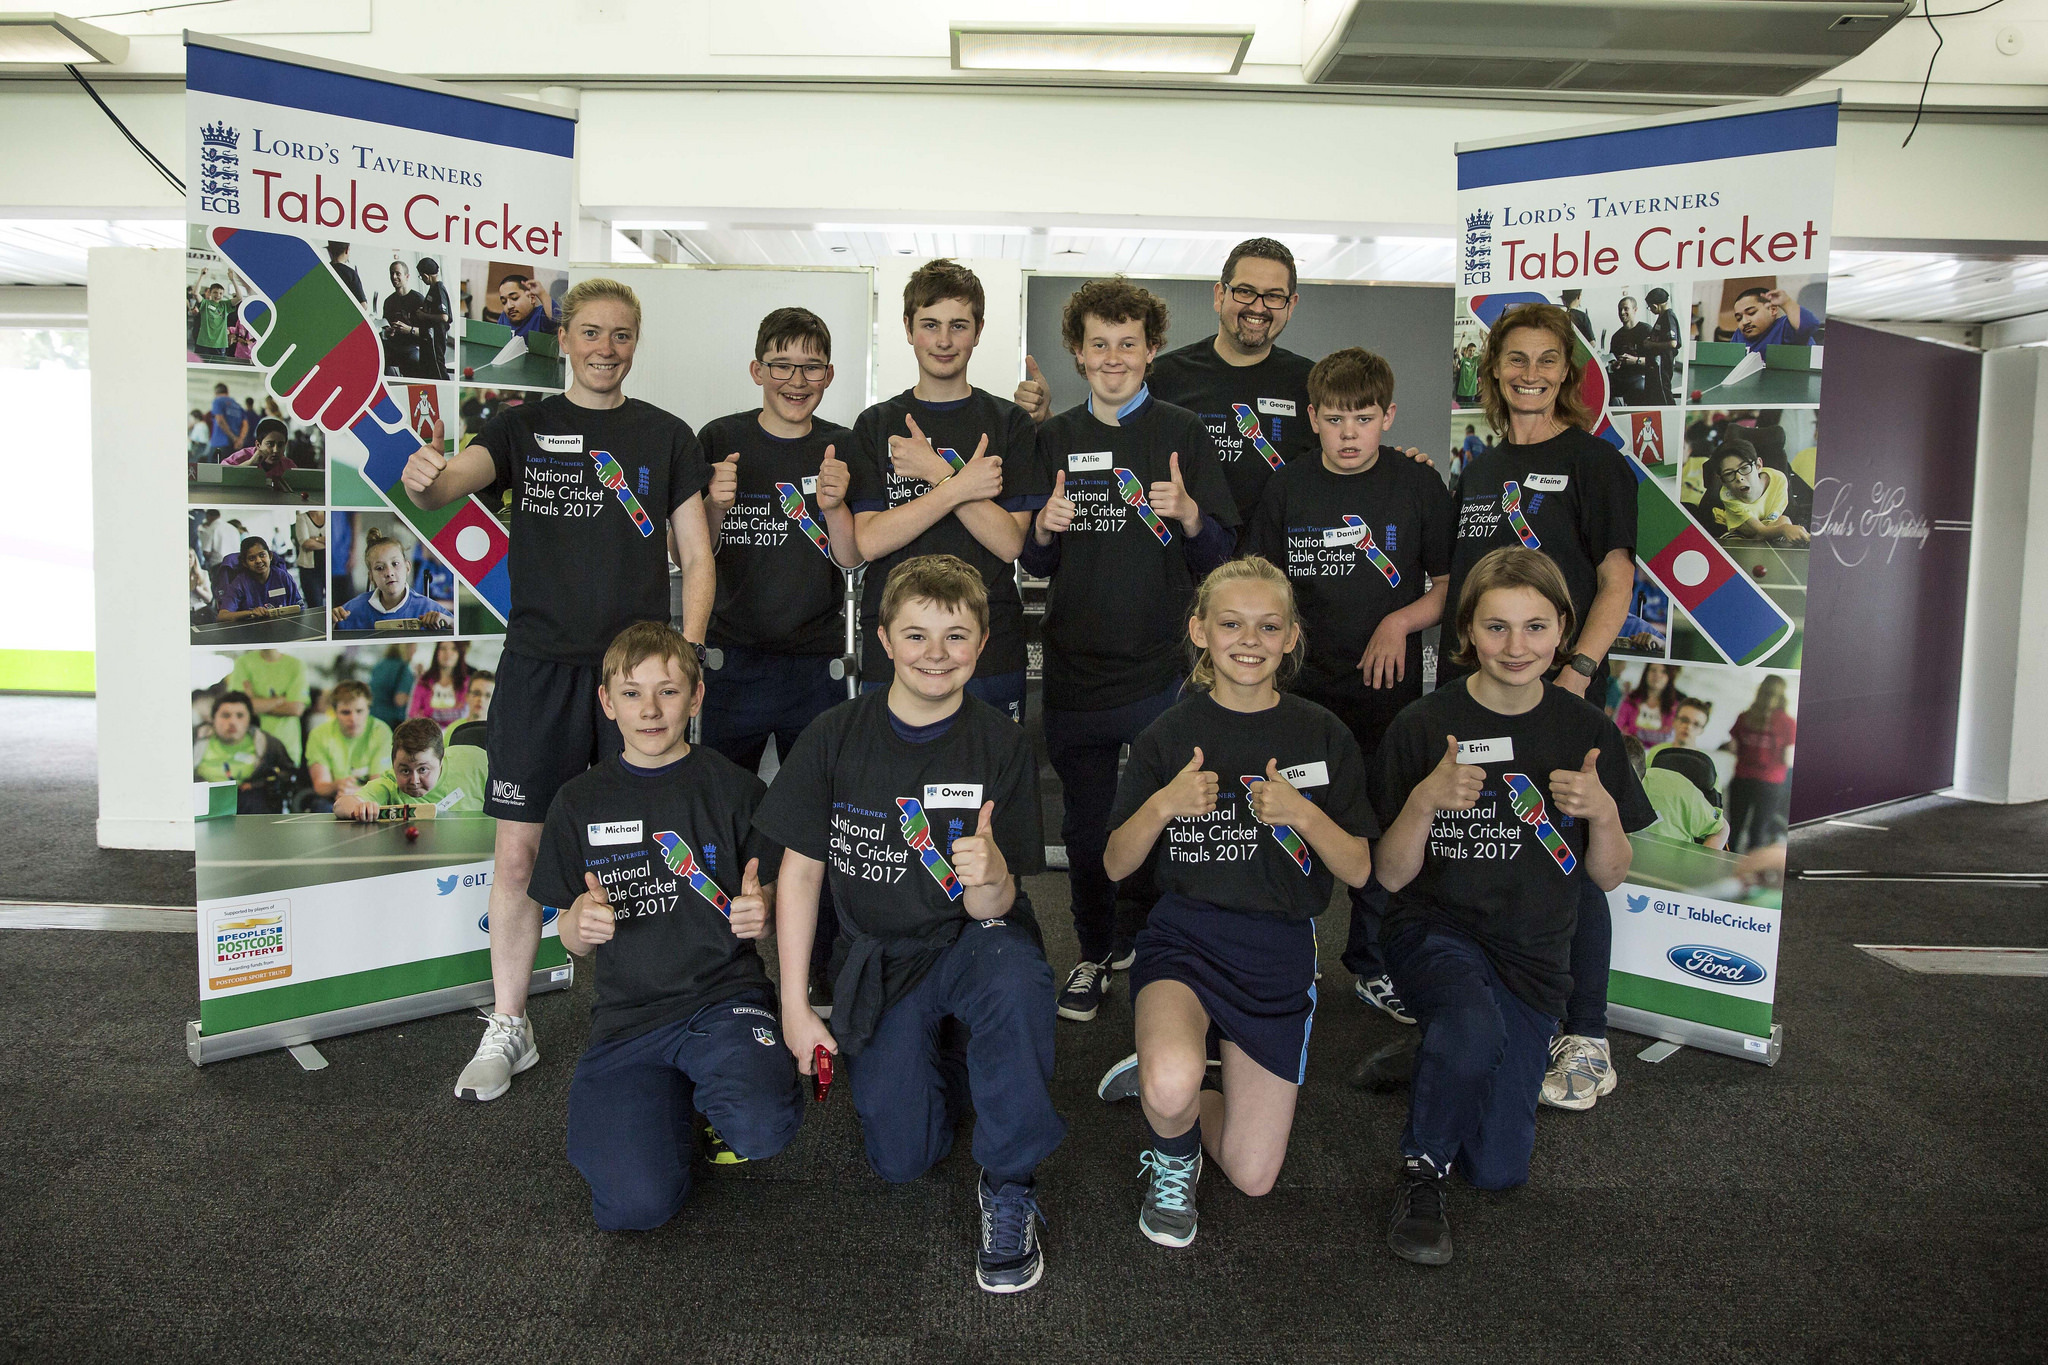 Ulverston Victoria High School took part in the Lord's Taverners table cricket finals